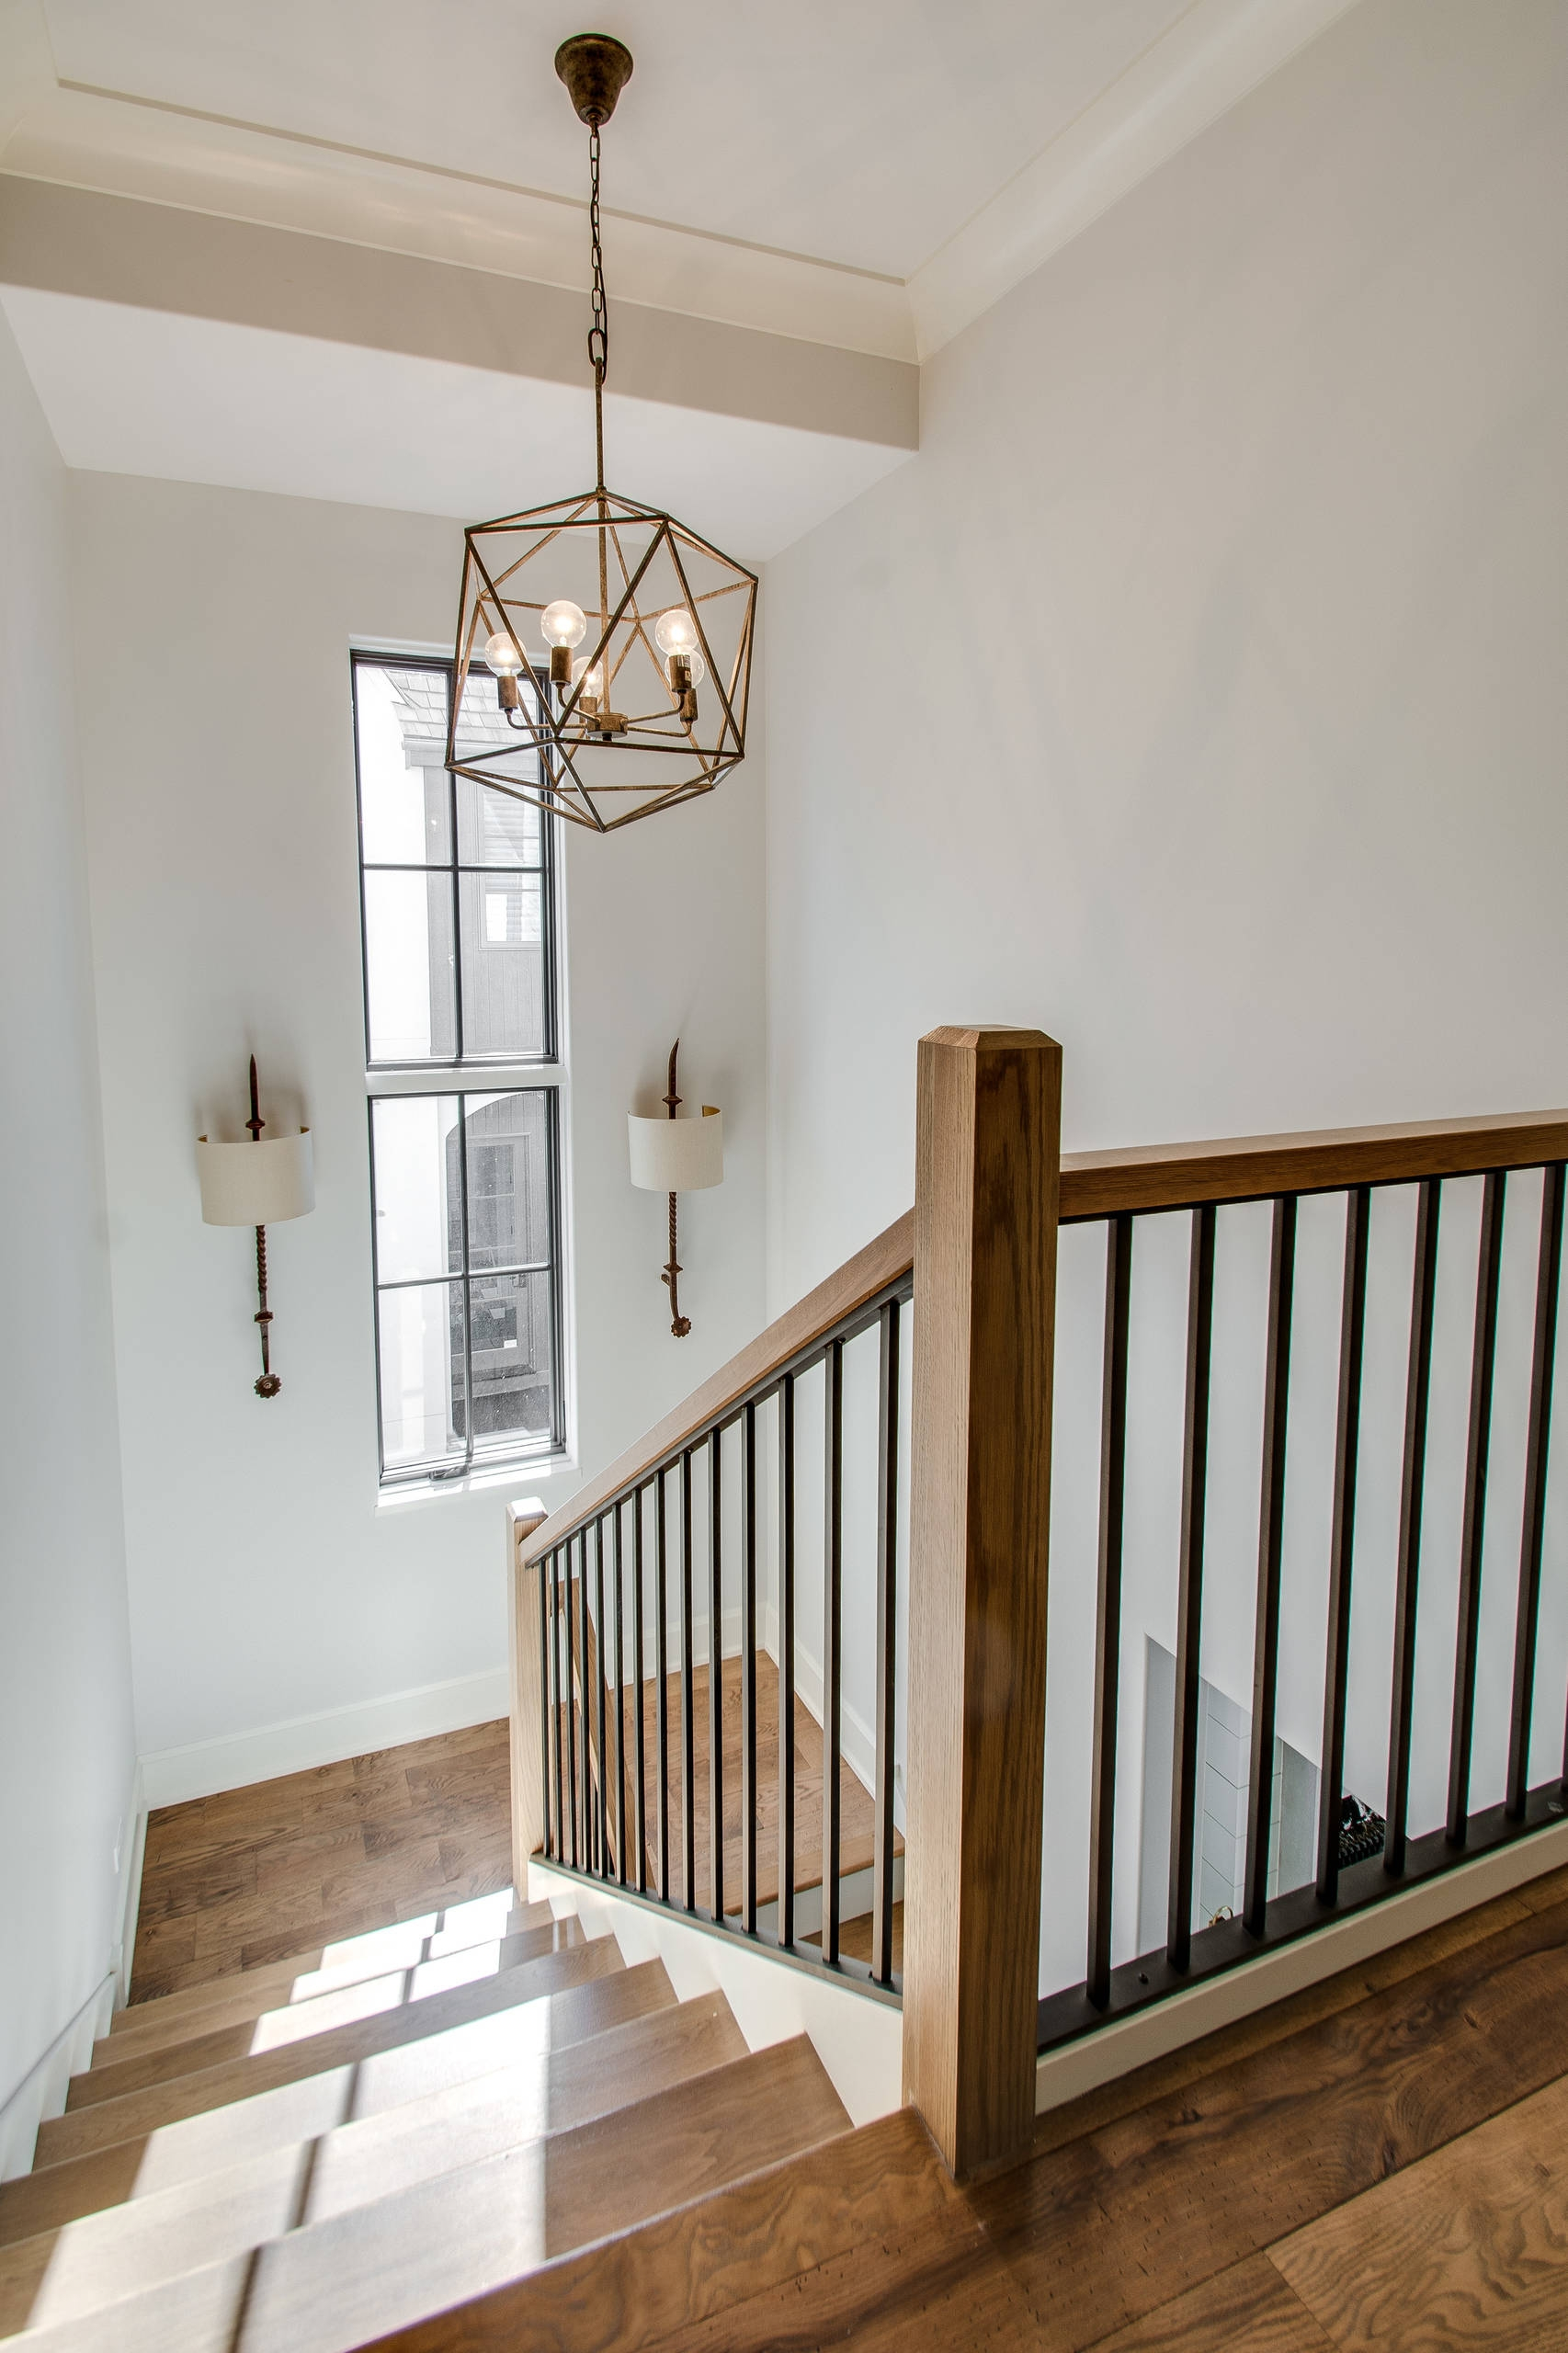 75 Beautiful Farmhouse Staircase Pictures Ideas September | Modern Farmhouse Stair Railing | Contemporary | Design Small House | Simple 2Nd Floor Railing Wood Stairs Iron Railing Design | Vintage Farmhouse | Wire